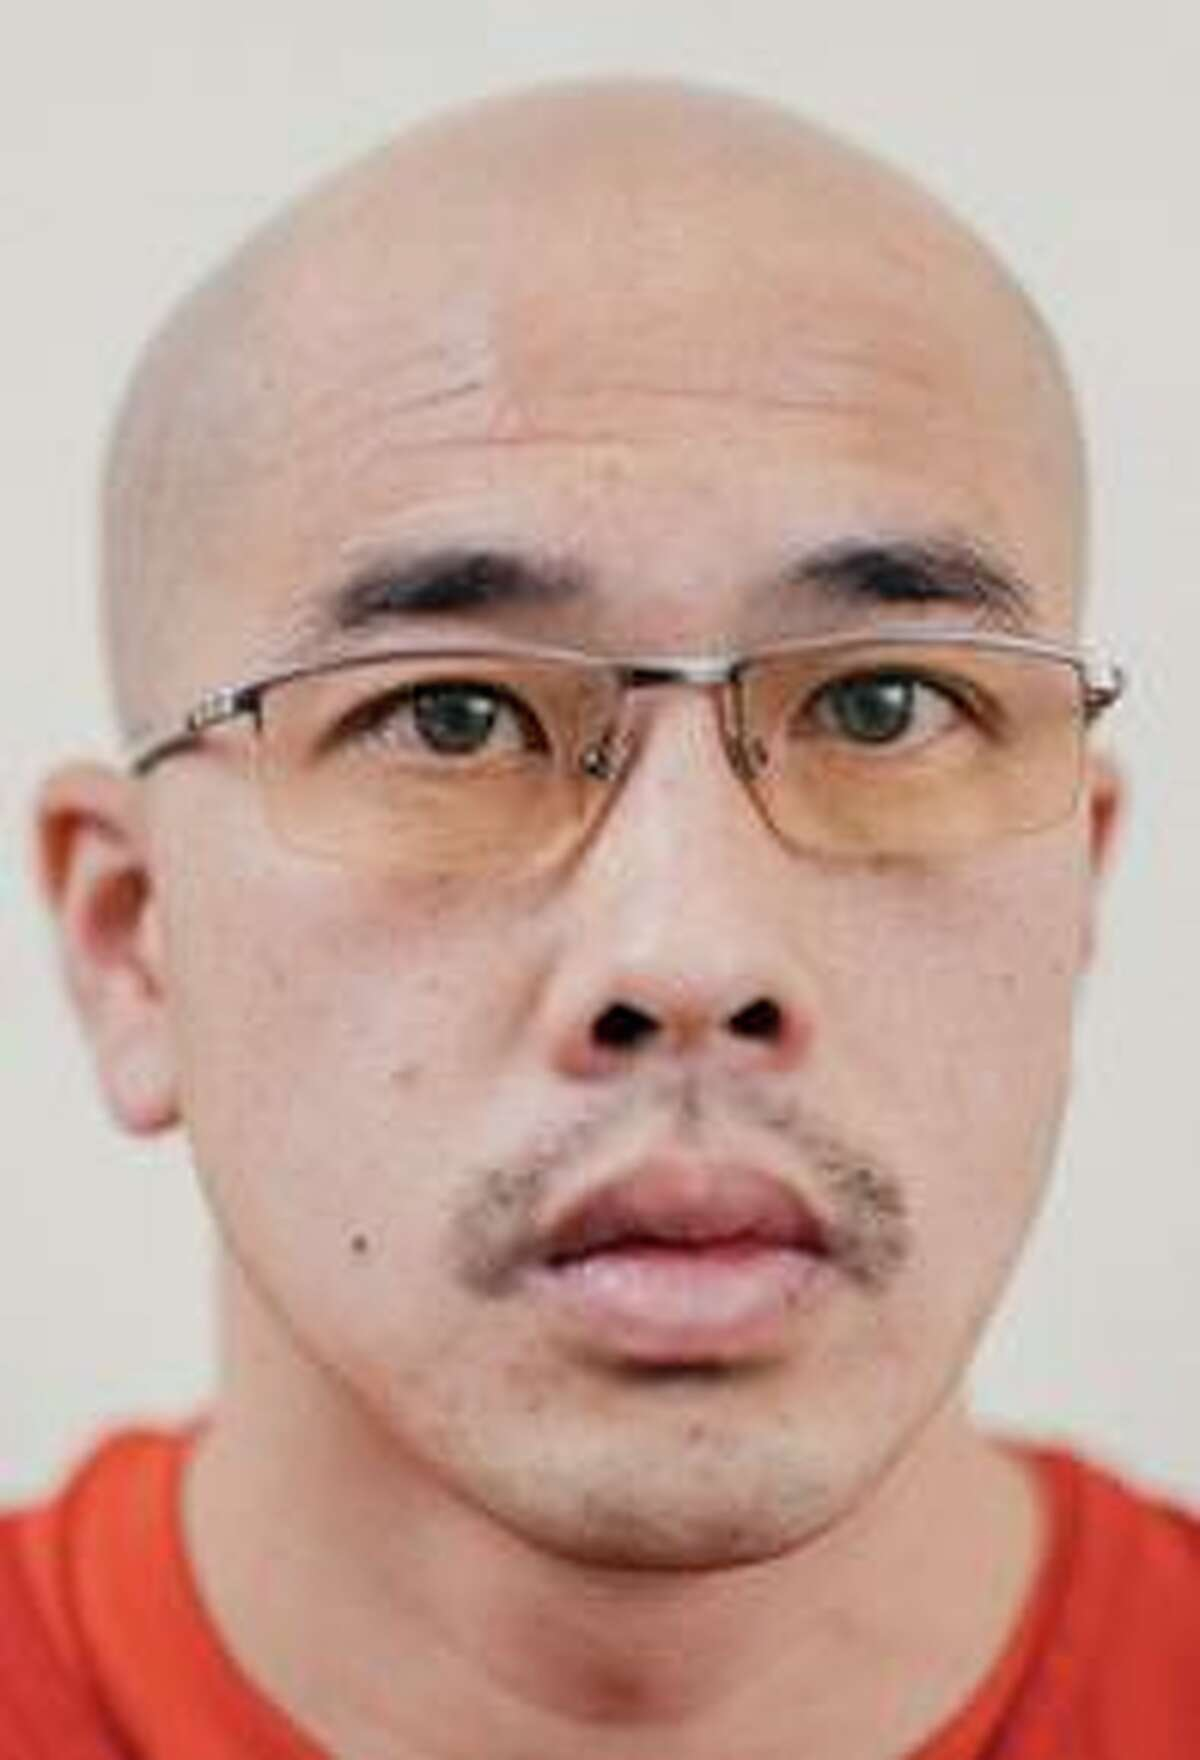 A federal immigration judge ordered Phi Pham, 30, of Hayward deported to Vietnam on Aug. 10, 2021. Pham has never been to Vietnam.